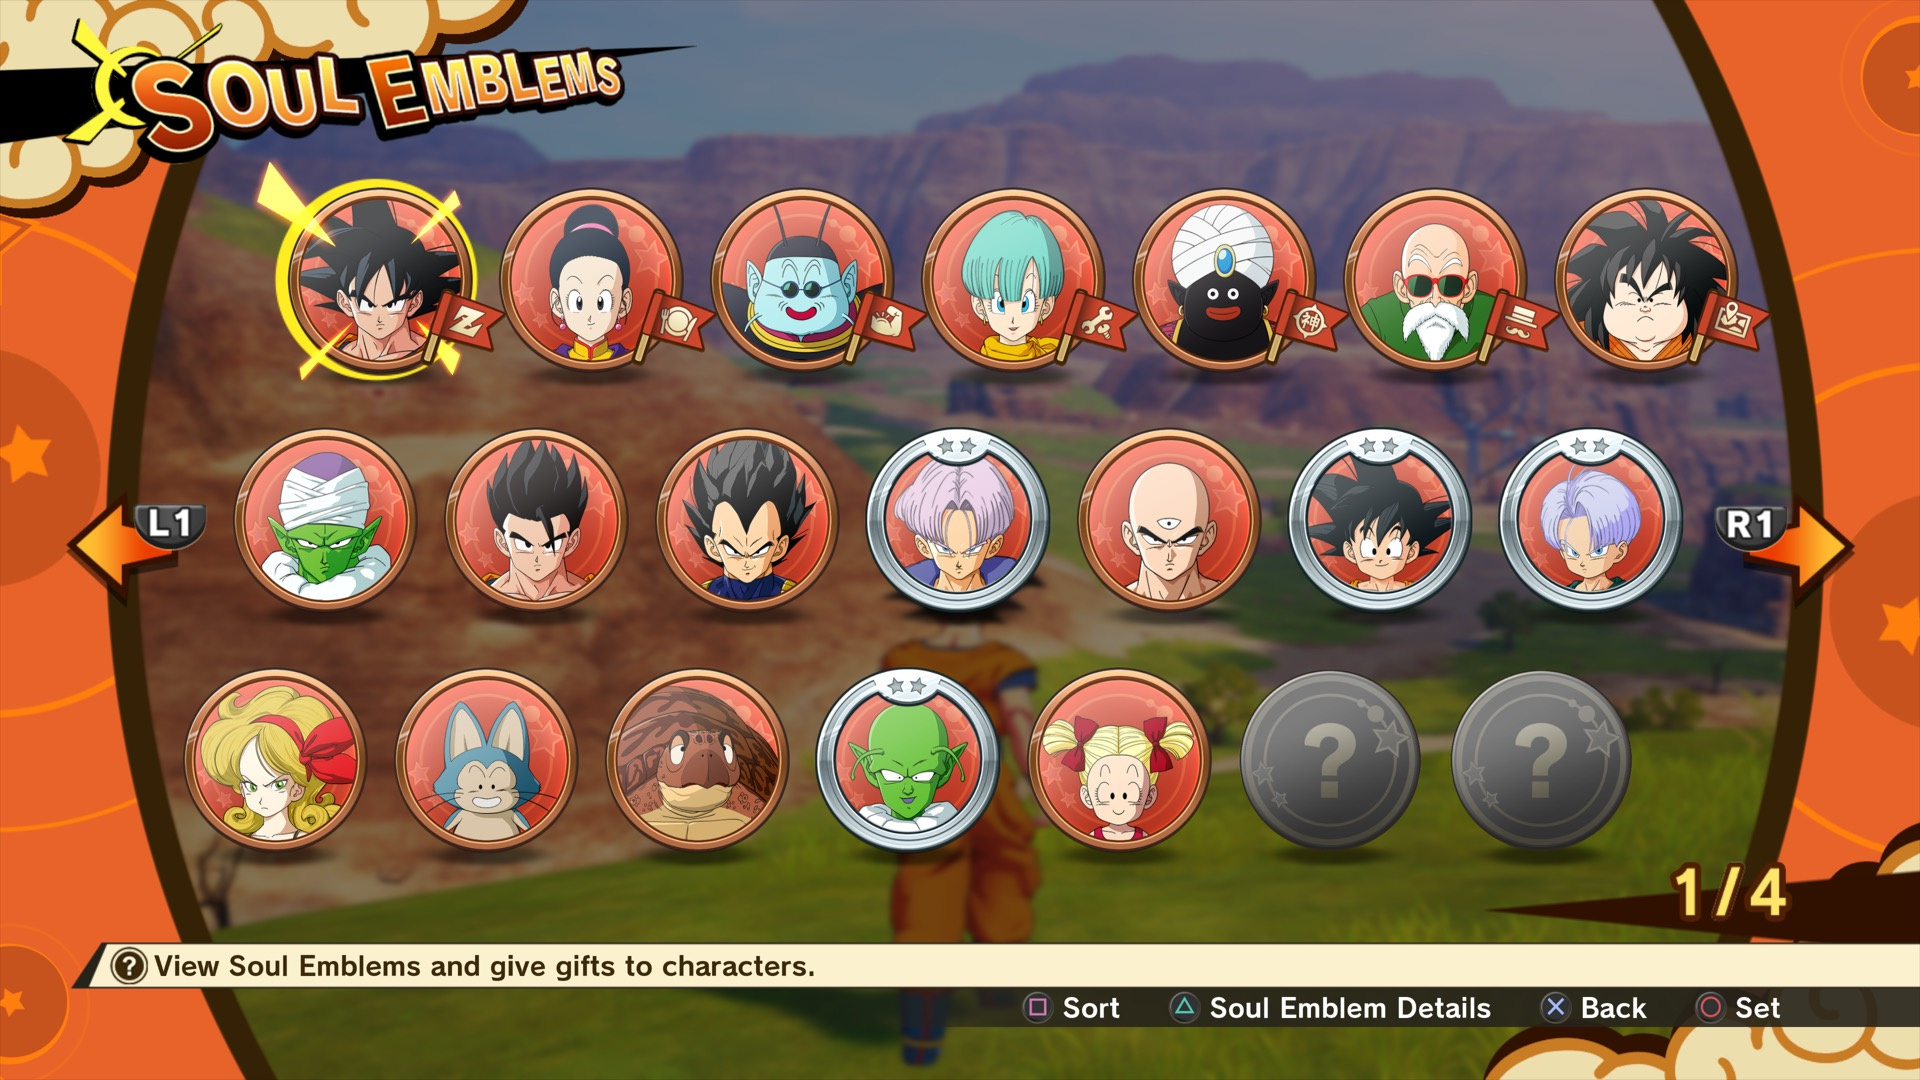 Dragon Ball Z Kakarot Soul Emblems All Soul Emblems And How To Get Them Guide Push Square